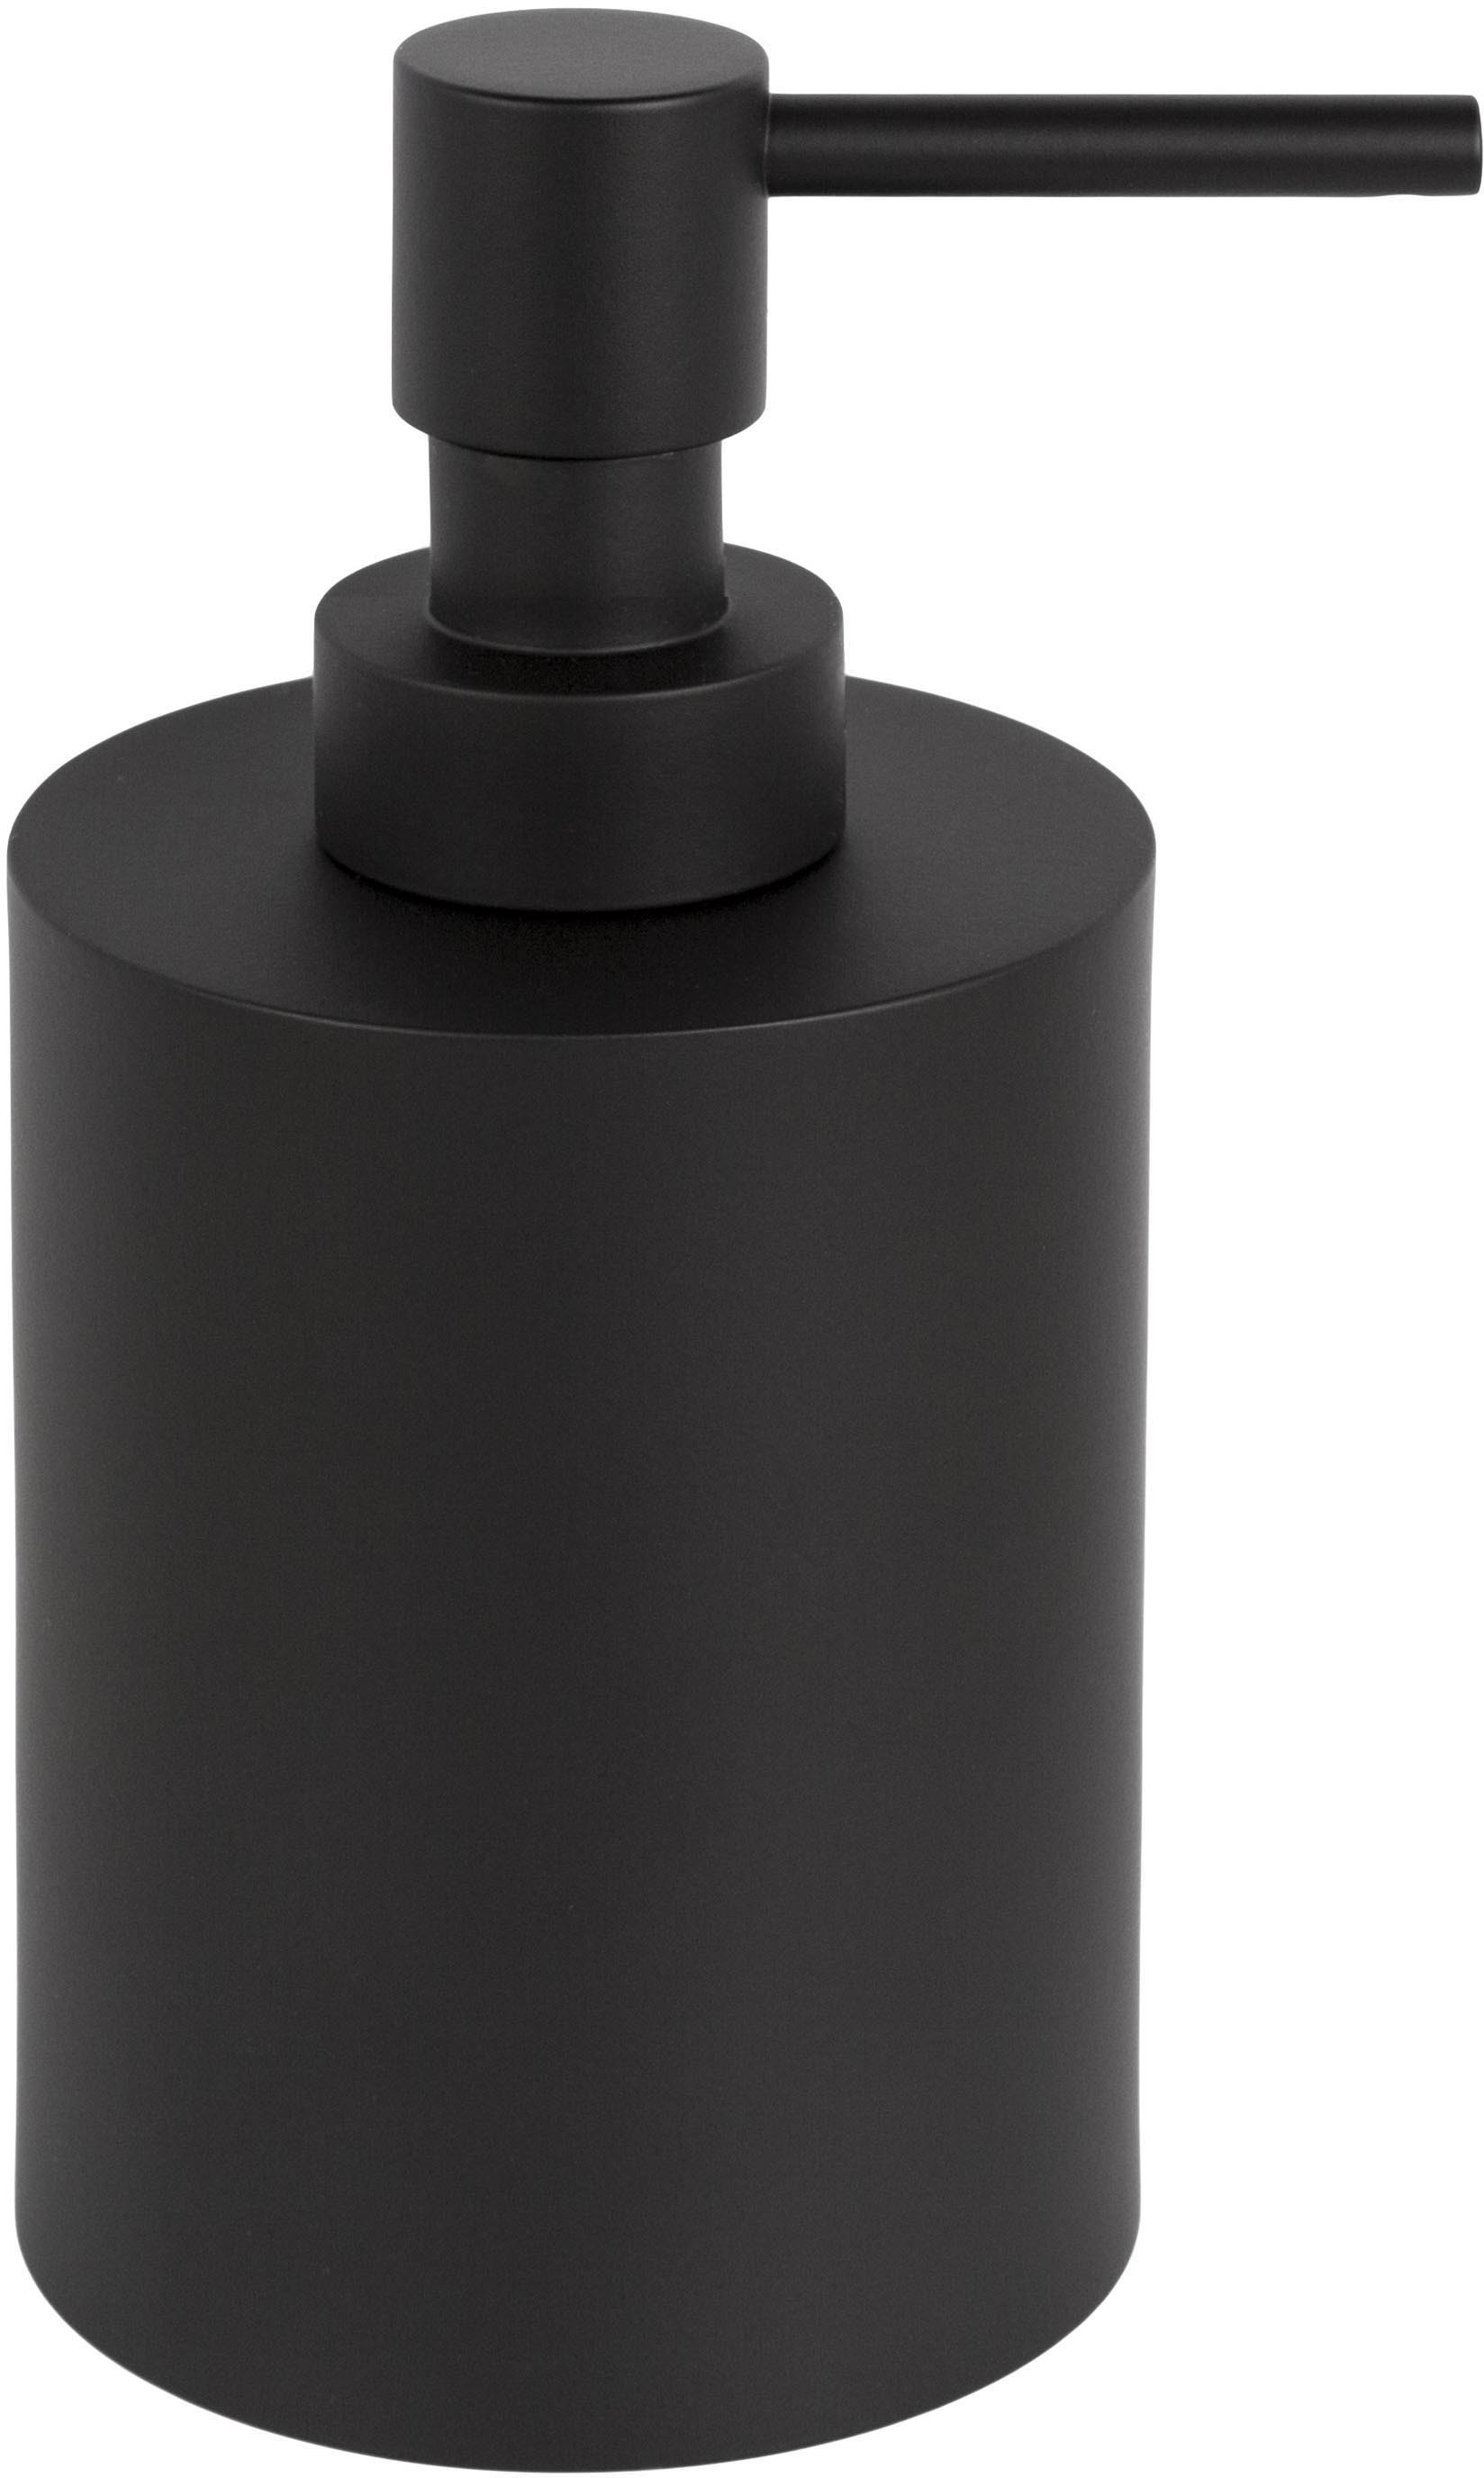 FORMANI ONE PB500 Soap dispenser free- standing satin black